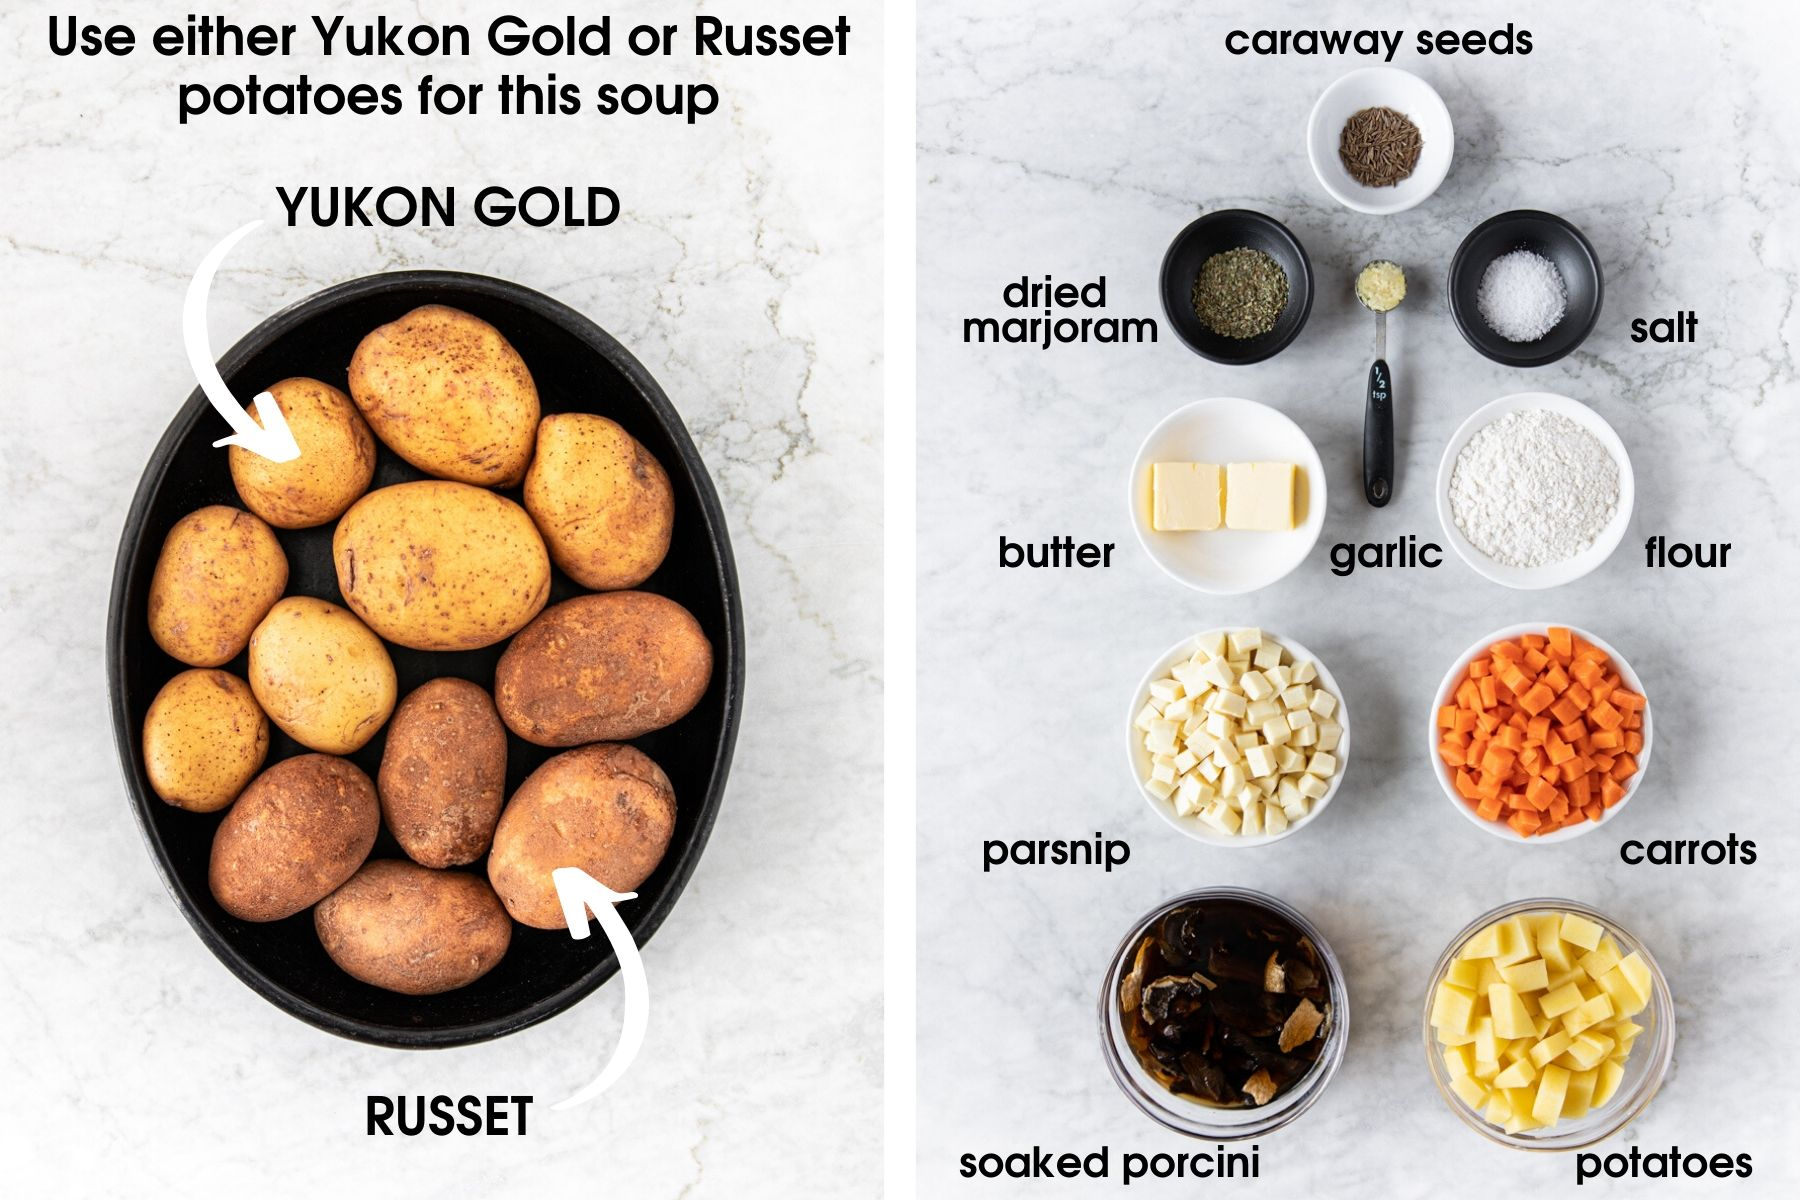 Two photos. One showing a plate with yukon gold and russet potatoes. The other photo showing ingredients to make Chunky Czech Potato Soup (Bramboračka) including: caraway seeds, dried marjoram, butter, garlic, salt, flour, carrots, parsnips, porcini, and potatoes.